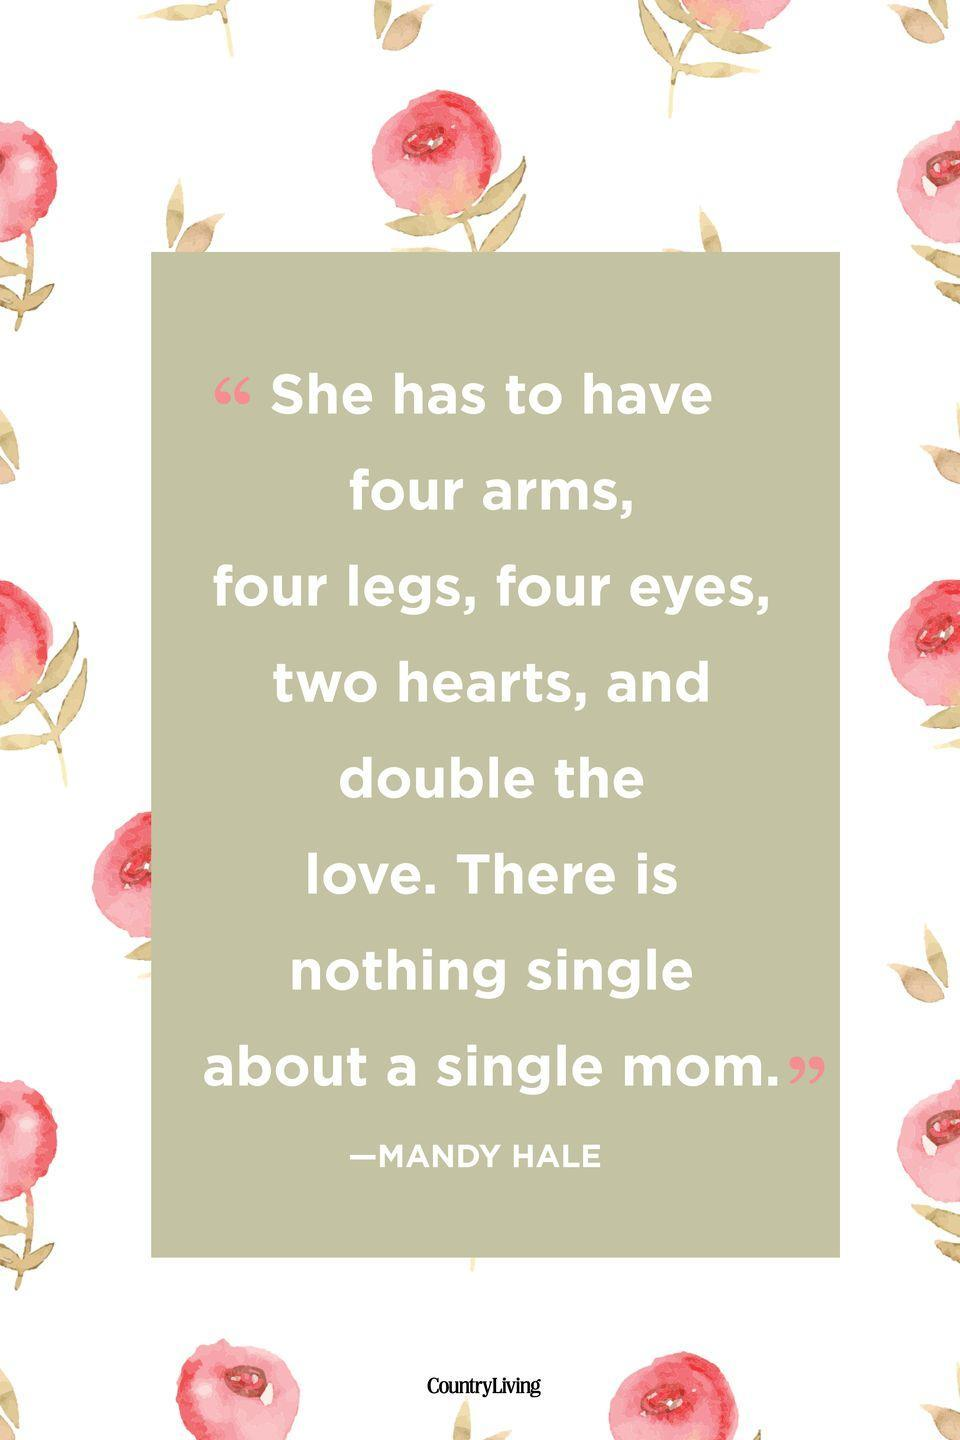 "<p>""She has to have four arms, four legs, four eyes, two hearts, and double the love. There is nothing single about a single mom.""</p>"